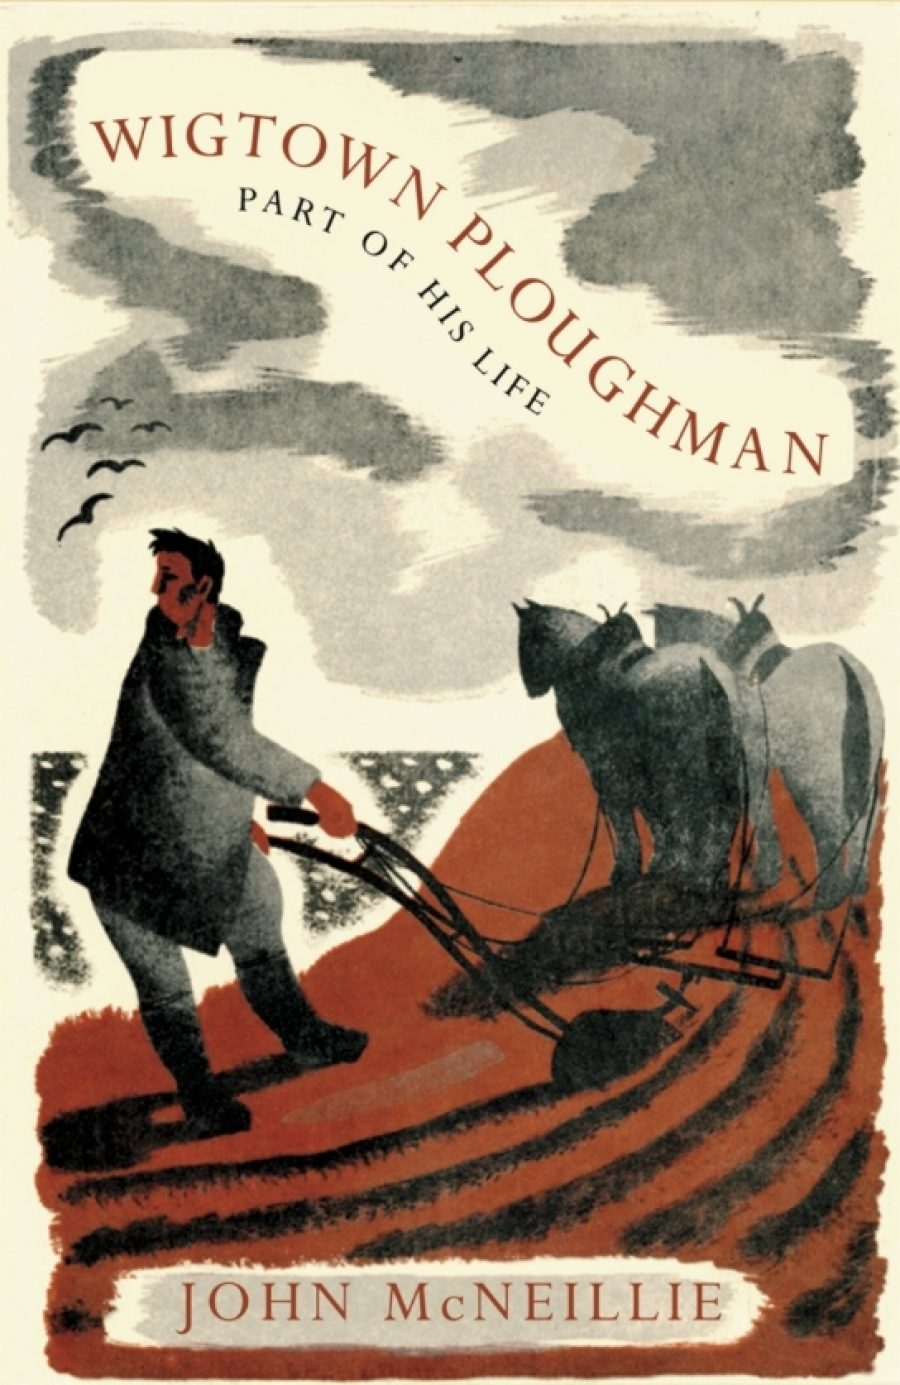 Wigtown Ploughman, John McNeillie cover